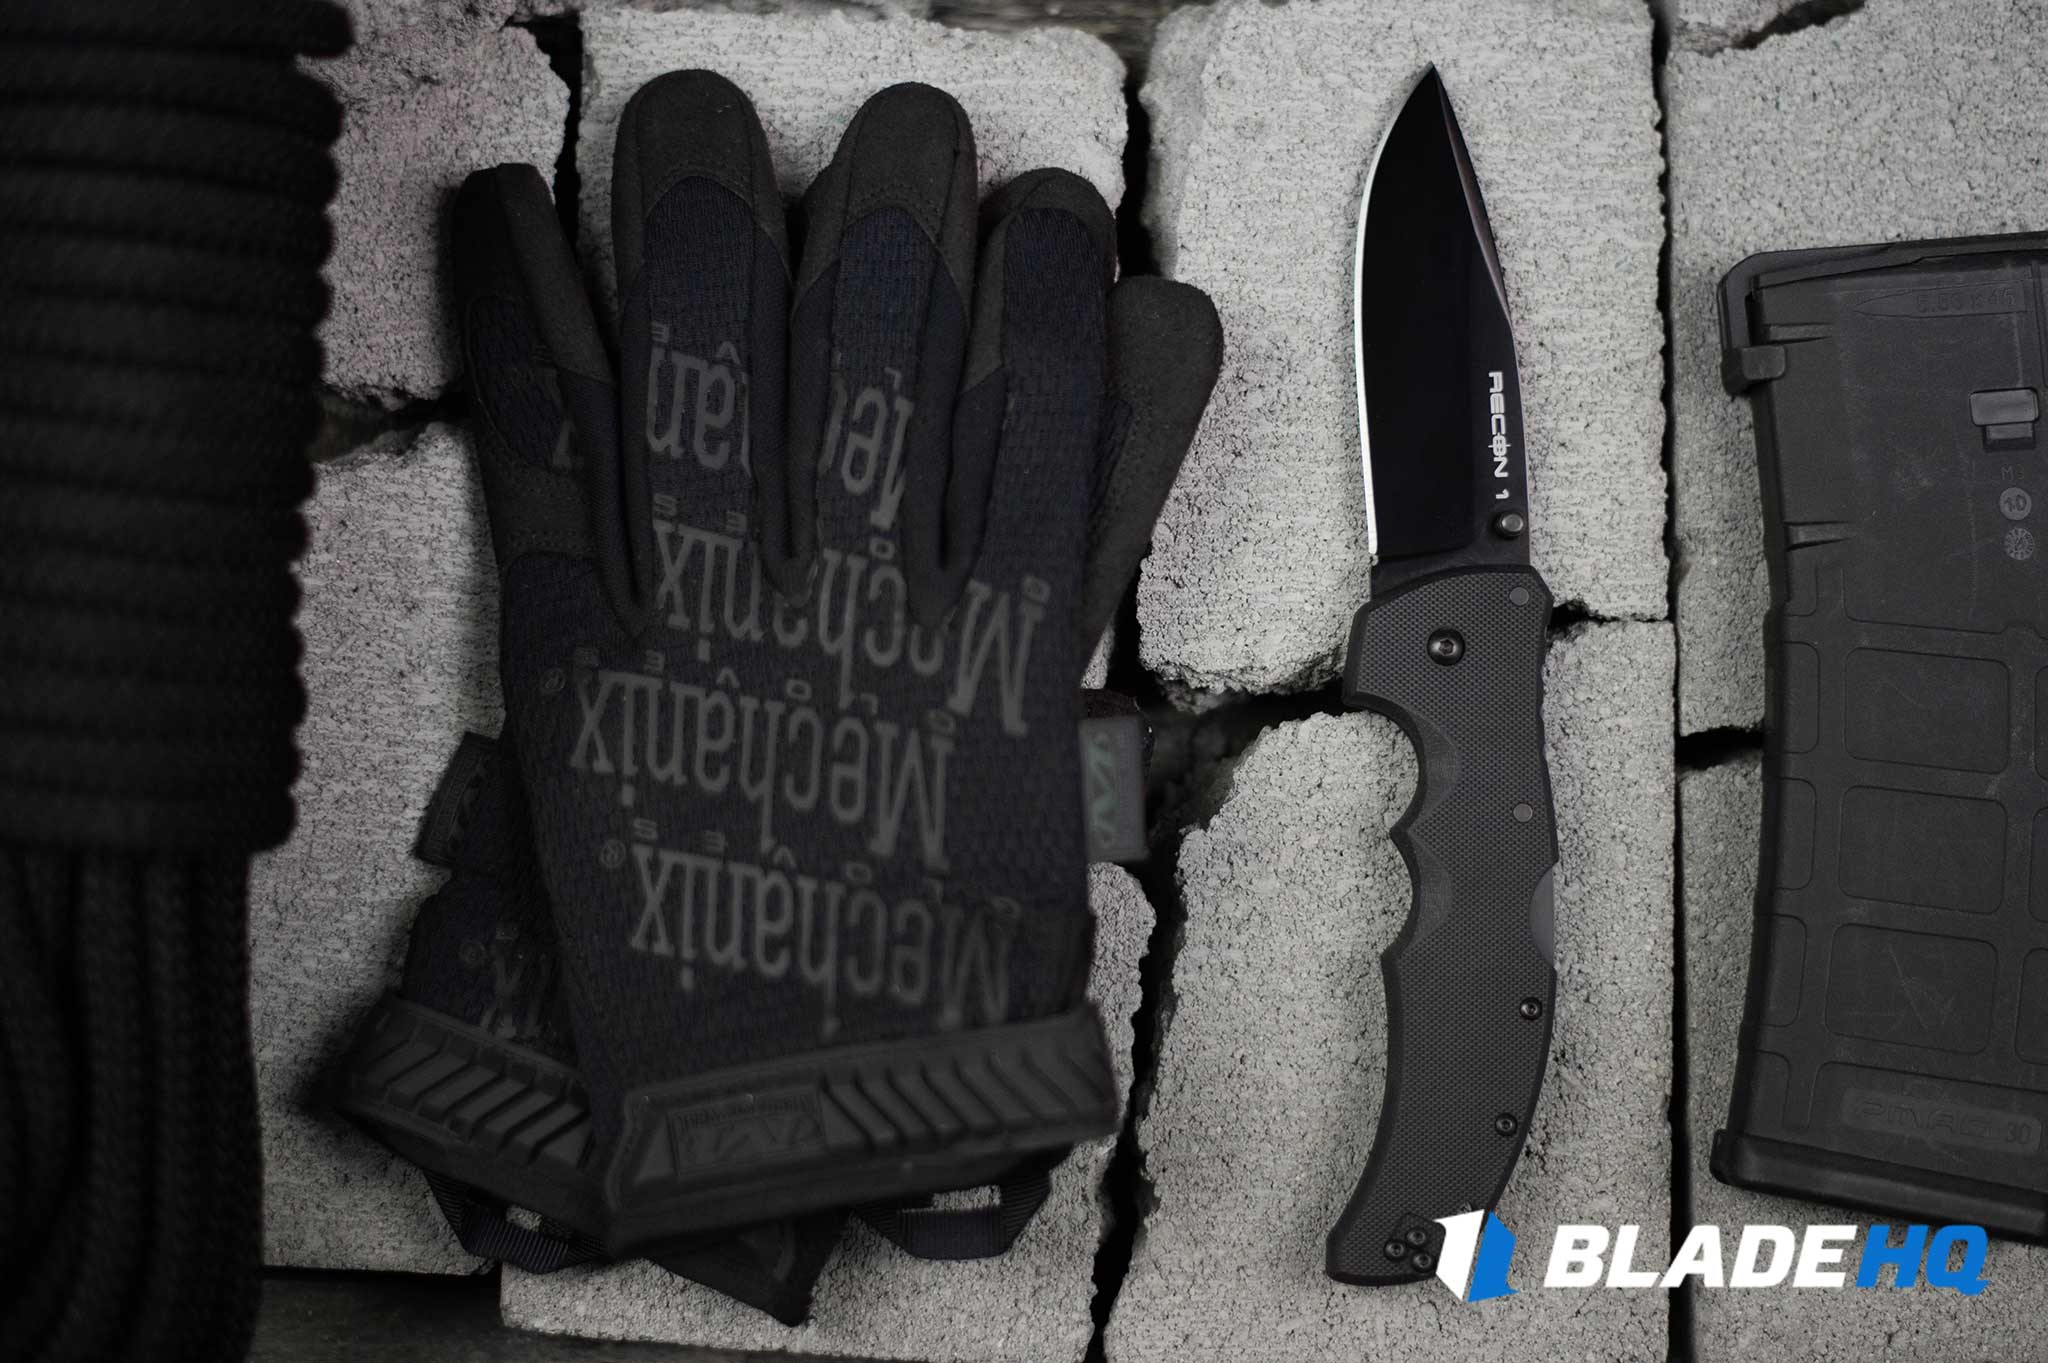 Cold Steel Recon 1 Knife Materials